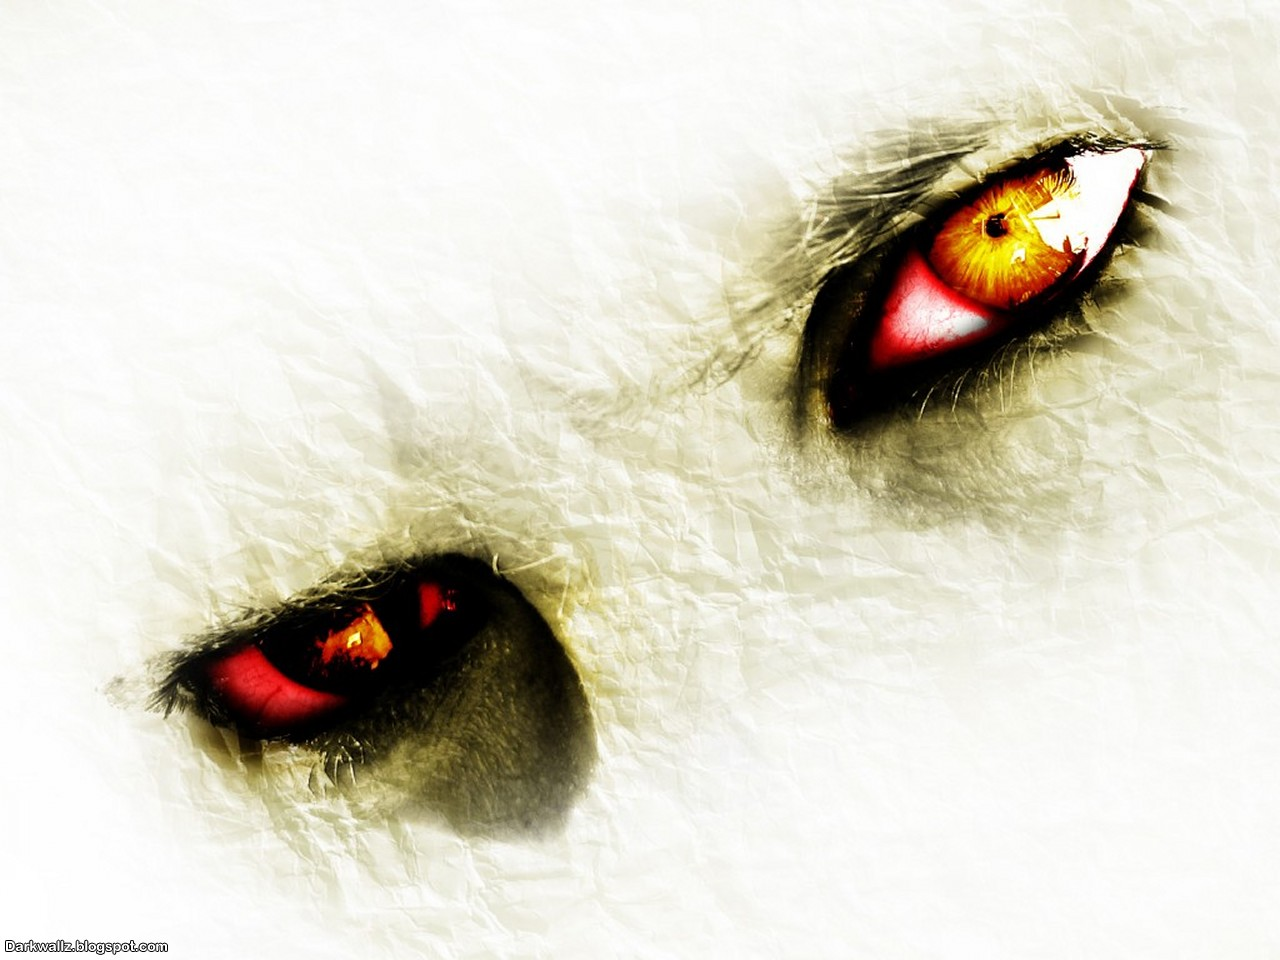 The Scary Eyes Wallpaper here you can see The Scary Eyes Wallpaper 1280x960